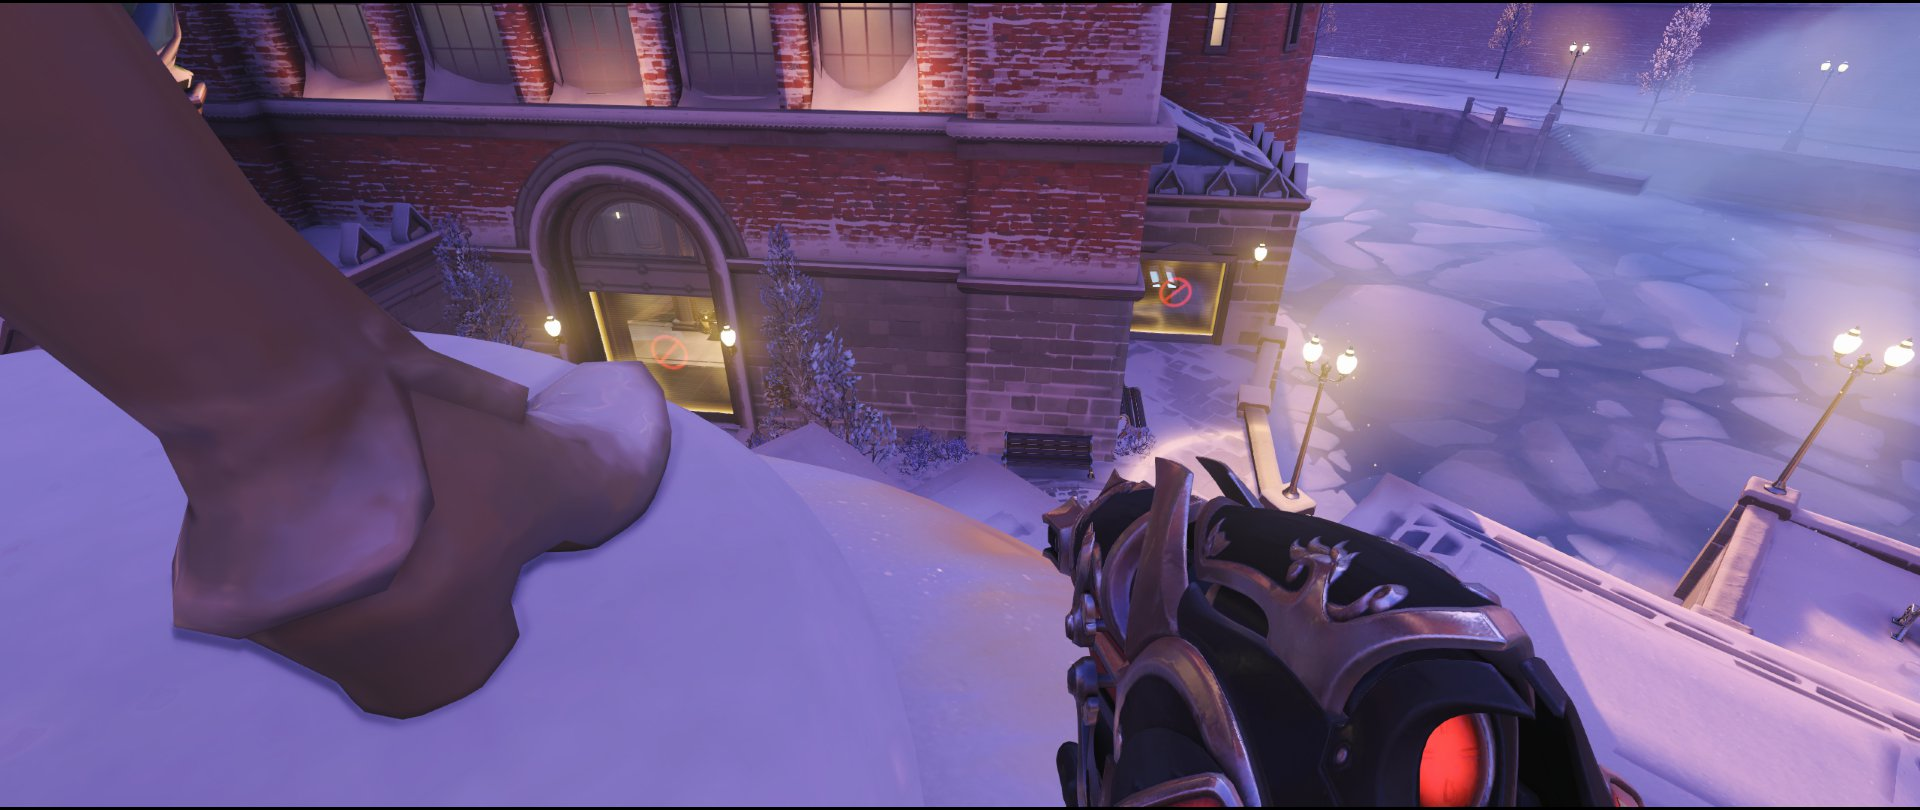 Shrine right statue defense sniping spot Widowmaker Volskaya Industries Overwatch.jpg